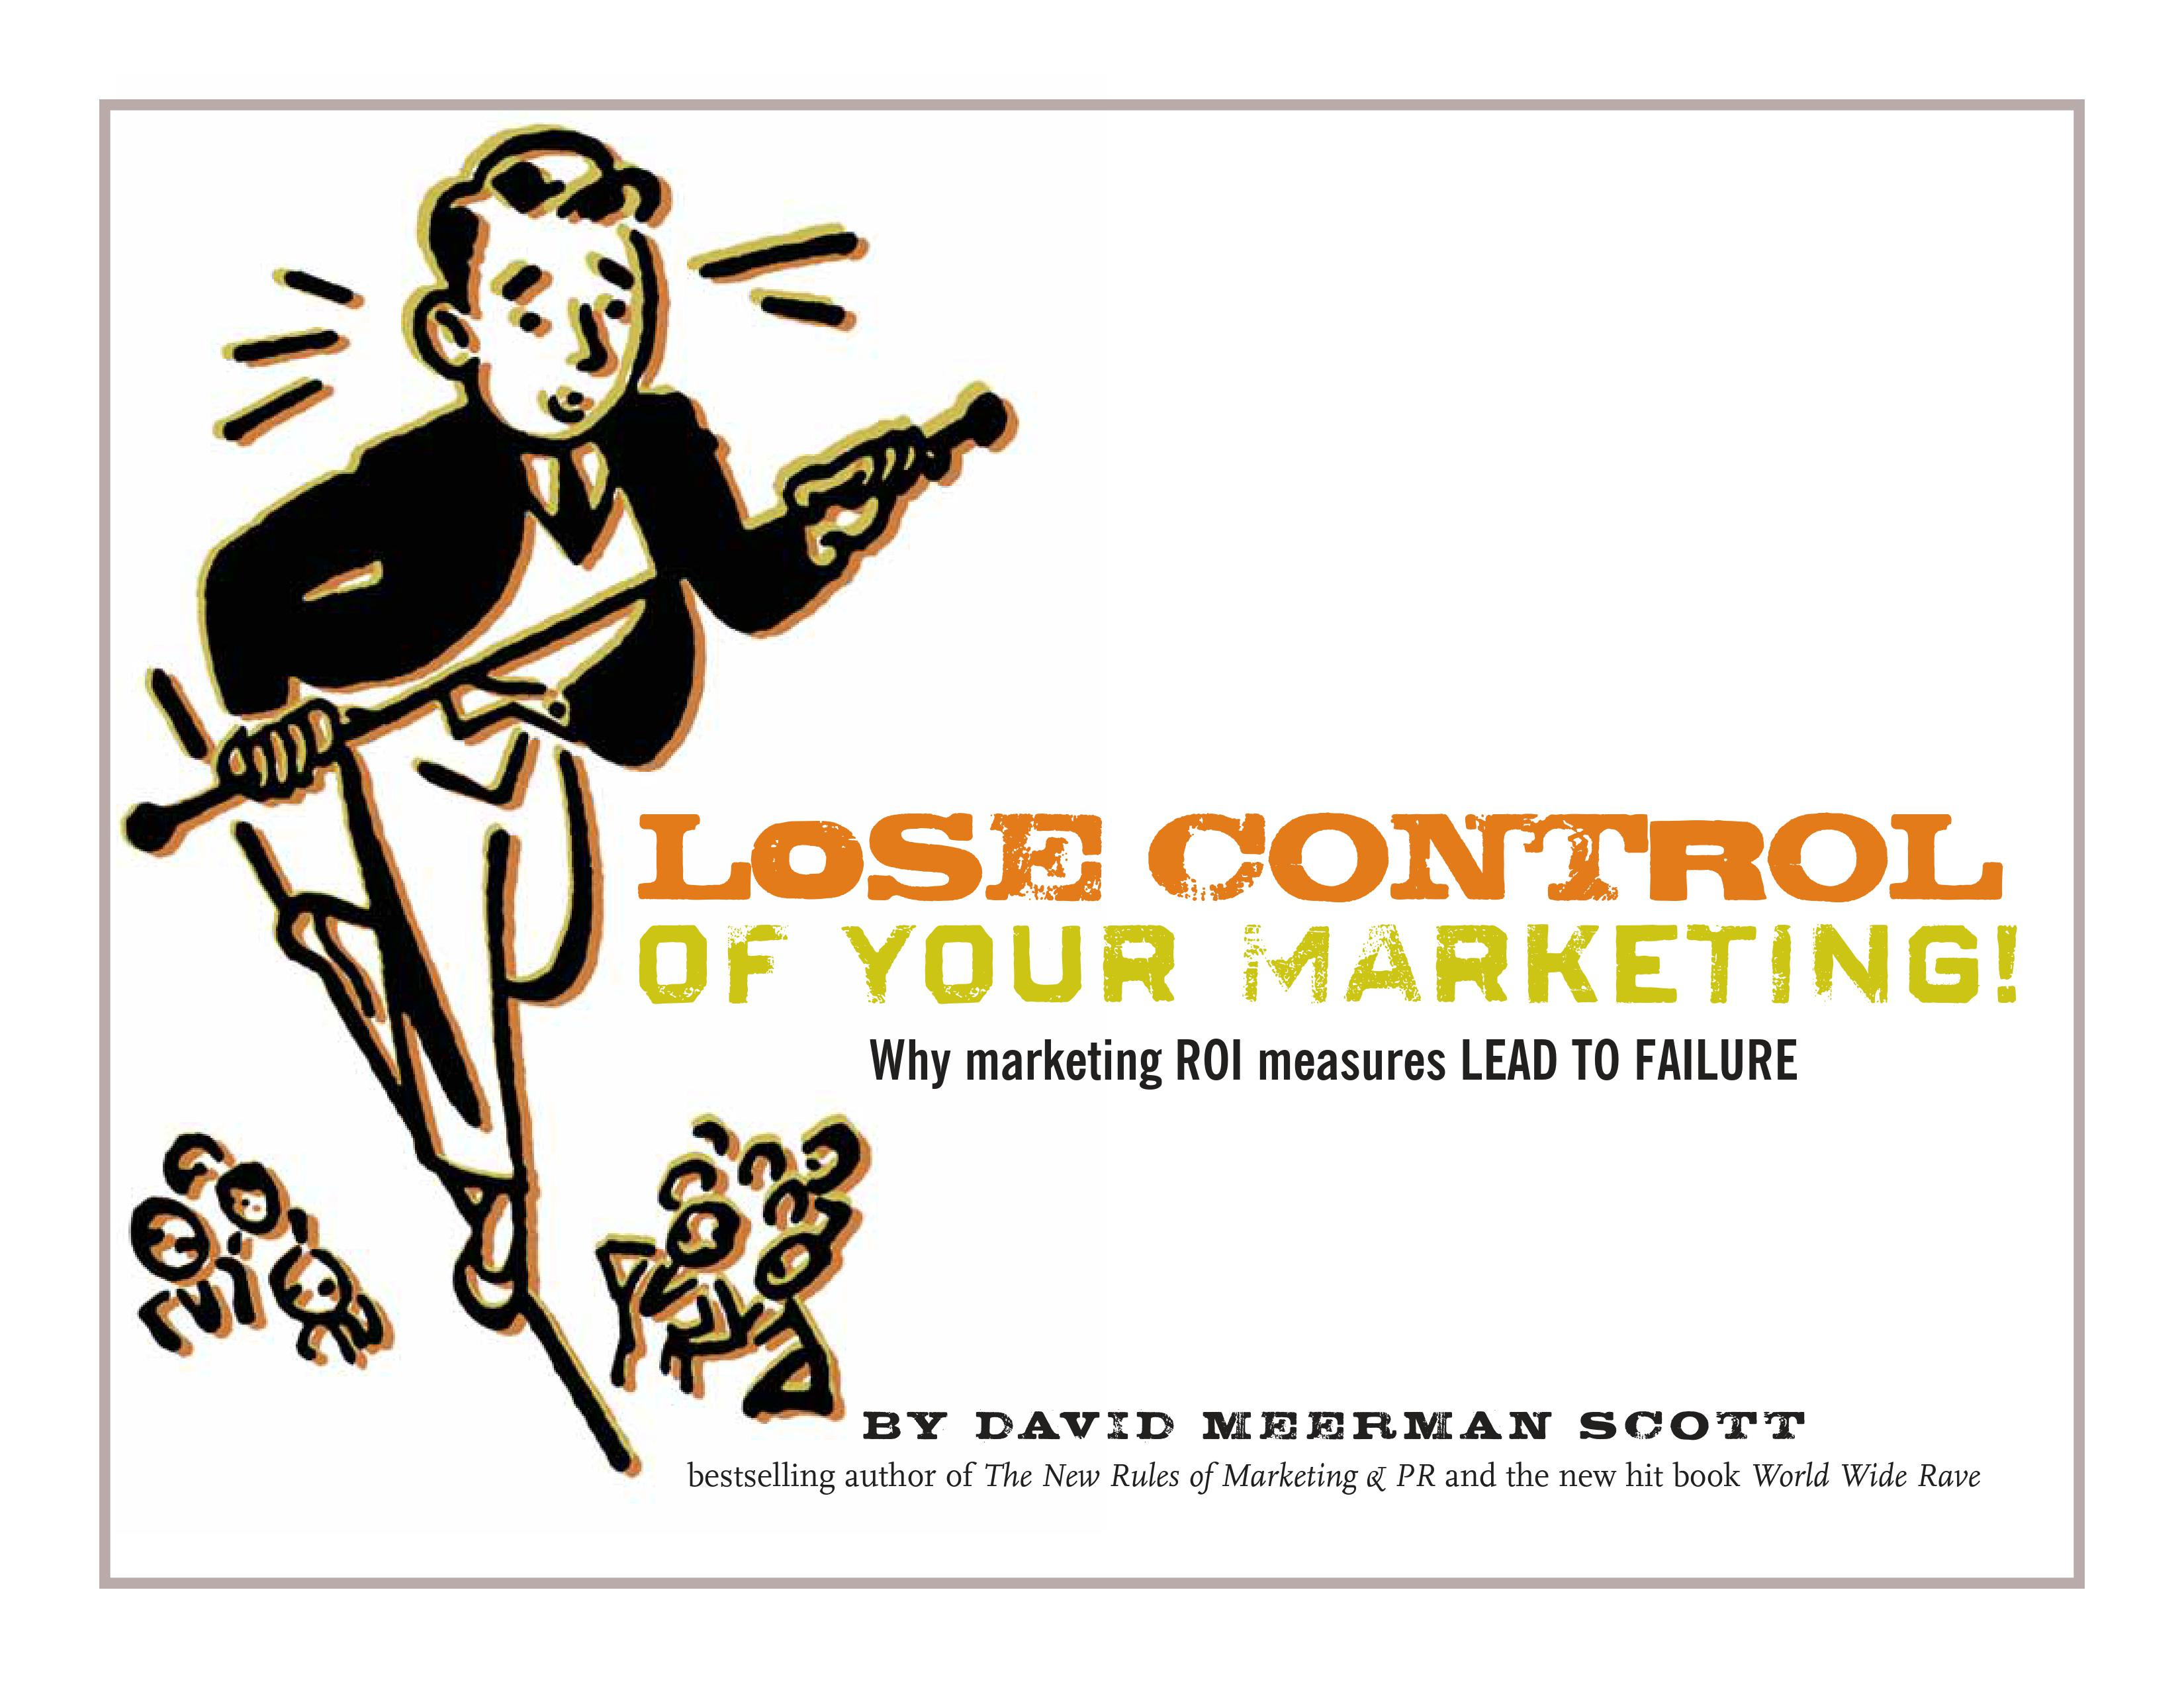 Lose Control of Your Marketing!